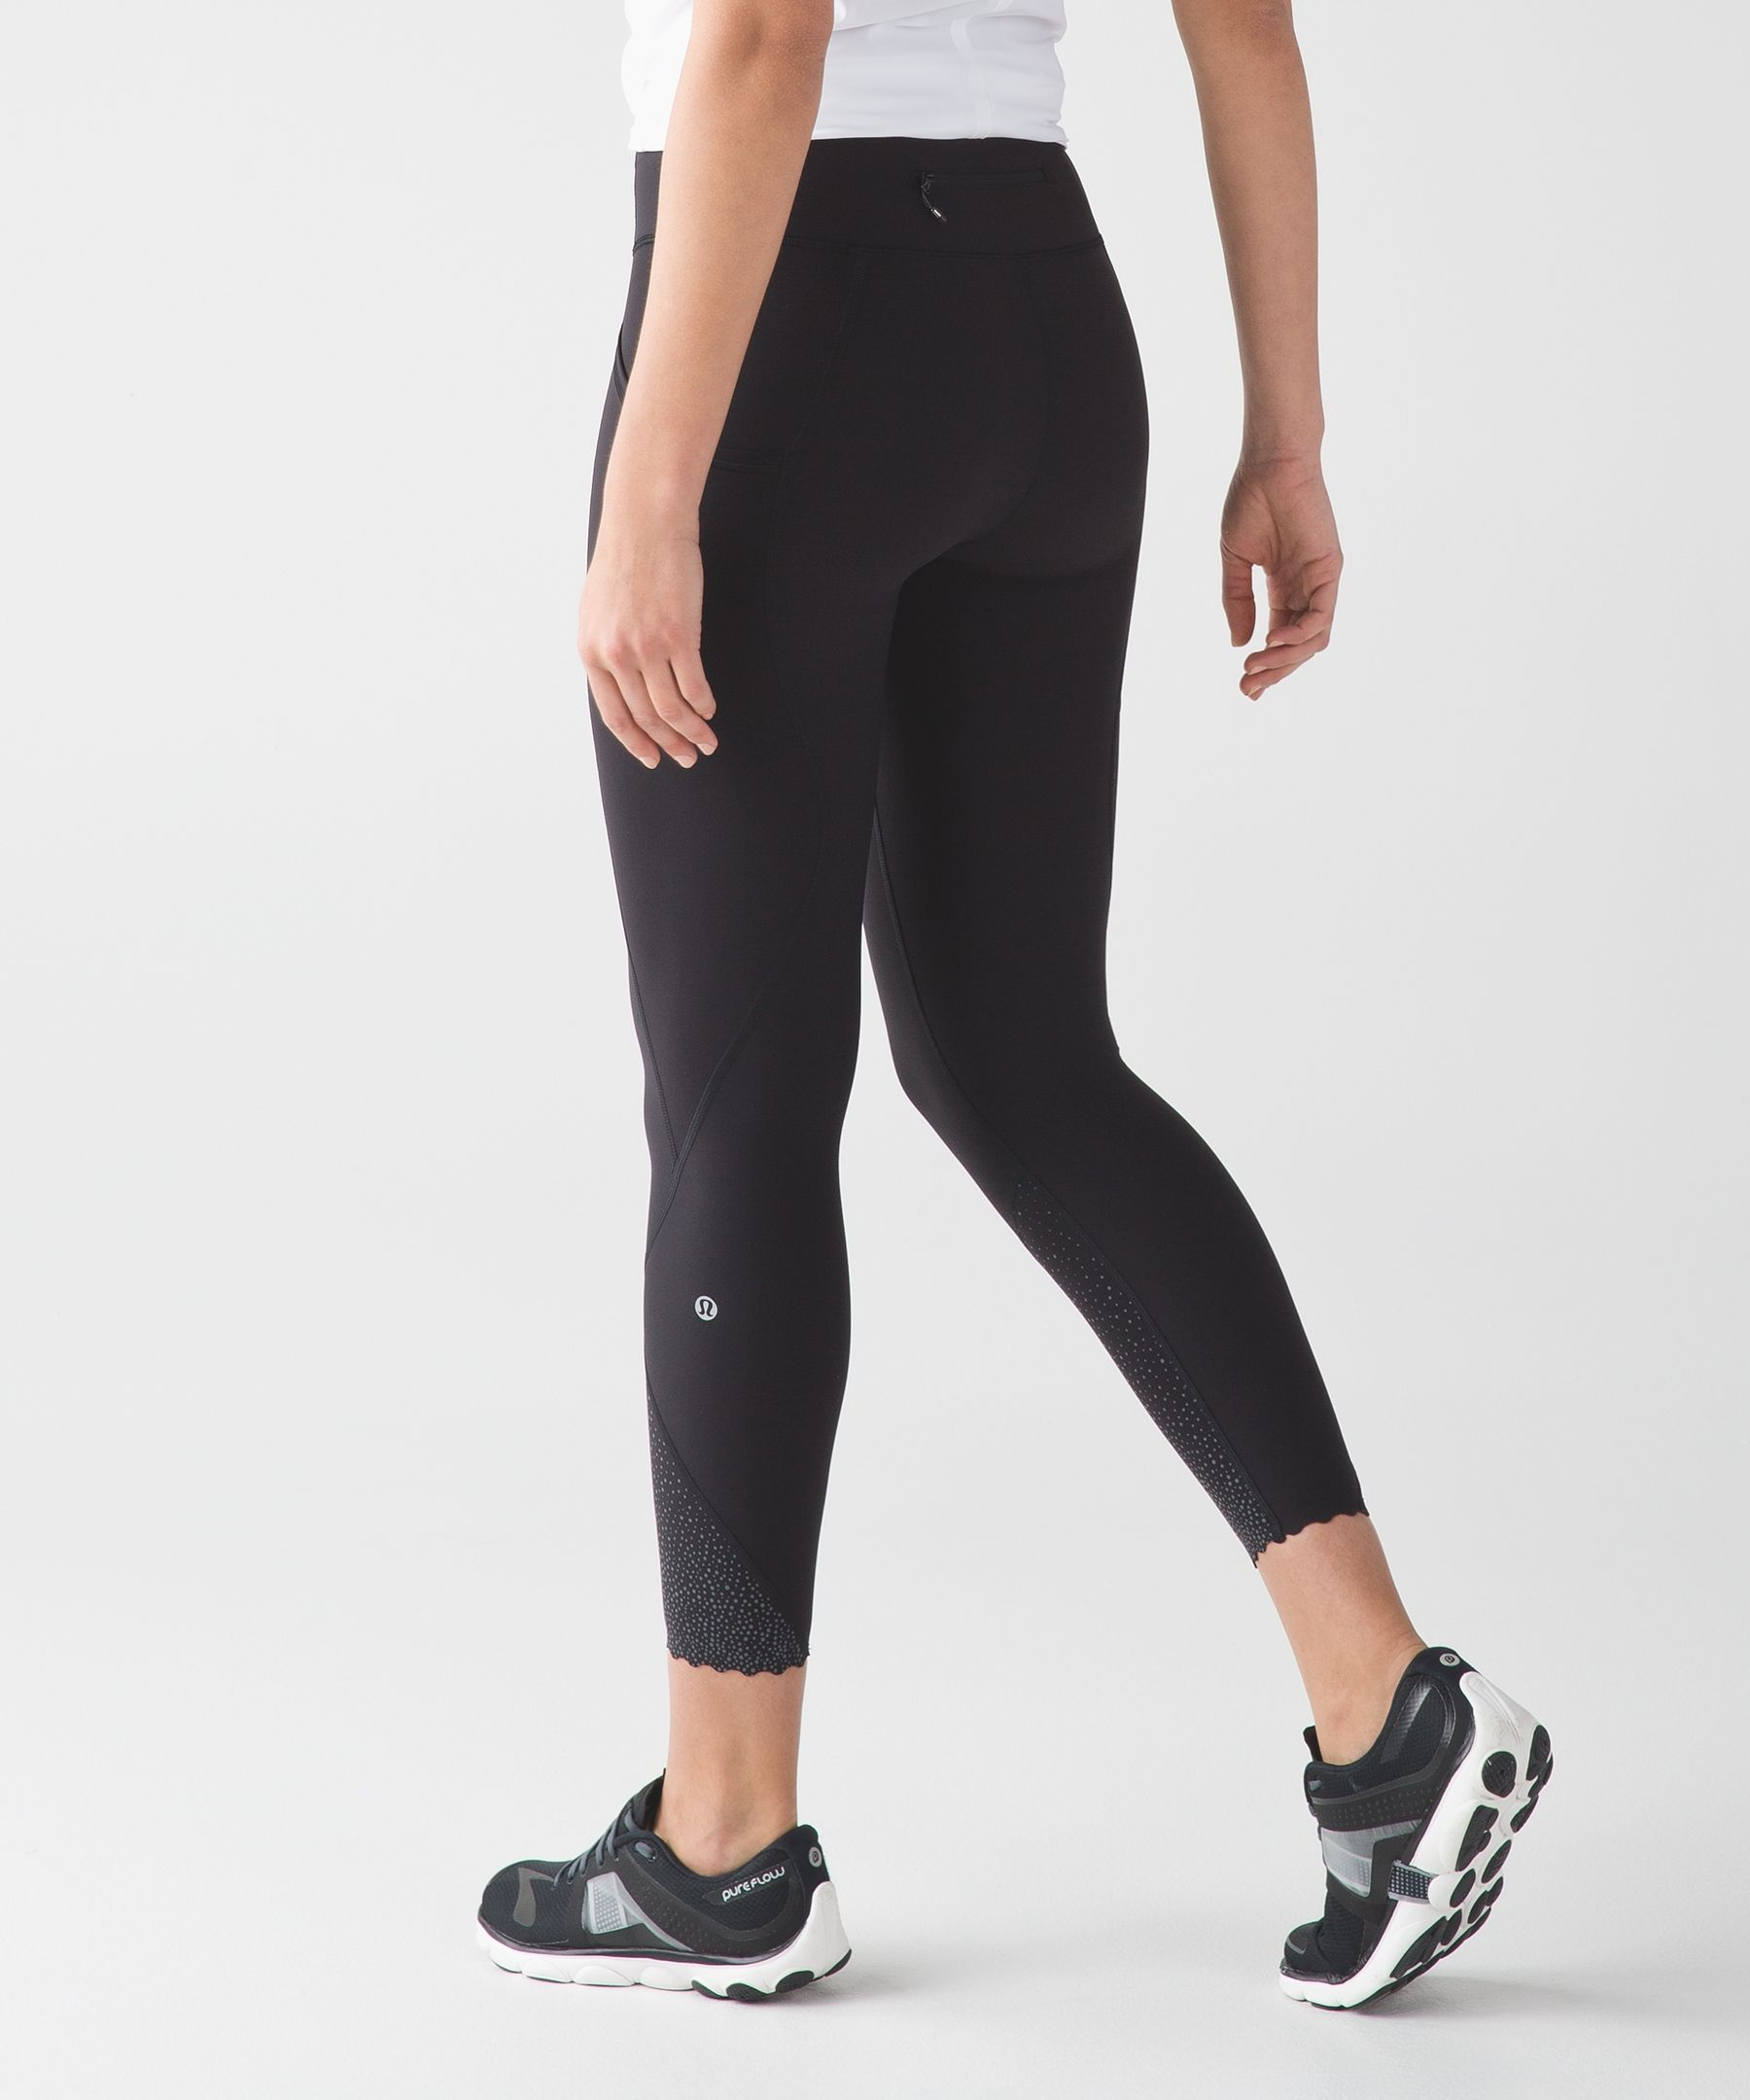 We engineered these training tights with moderate